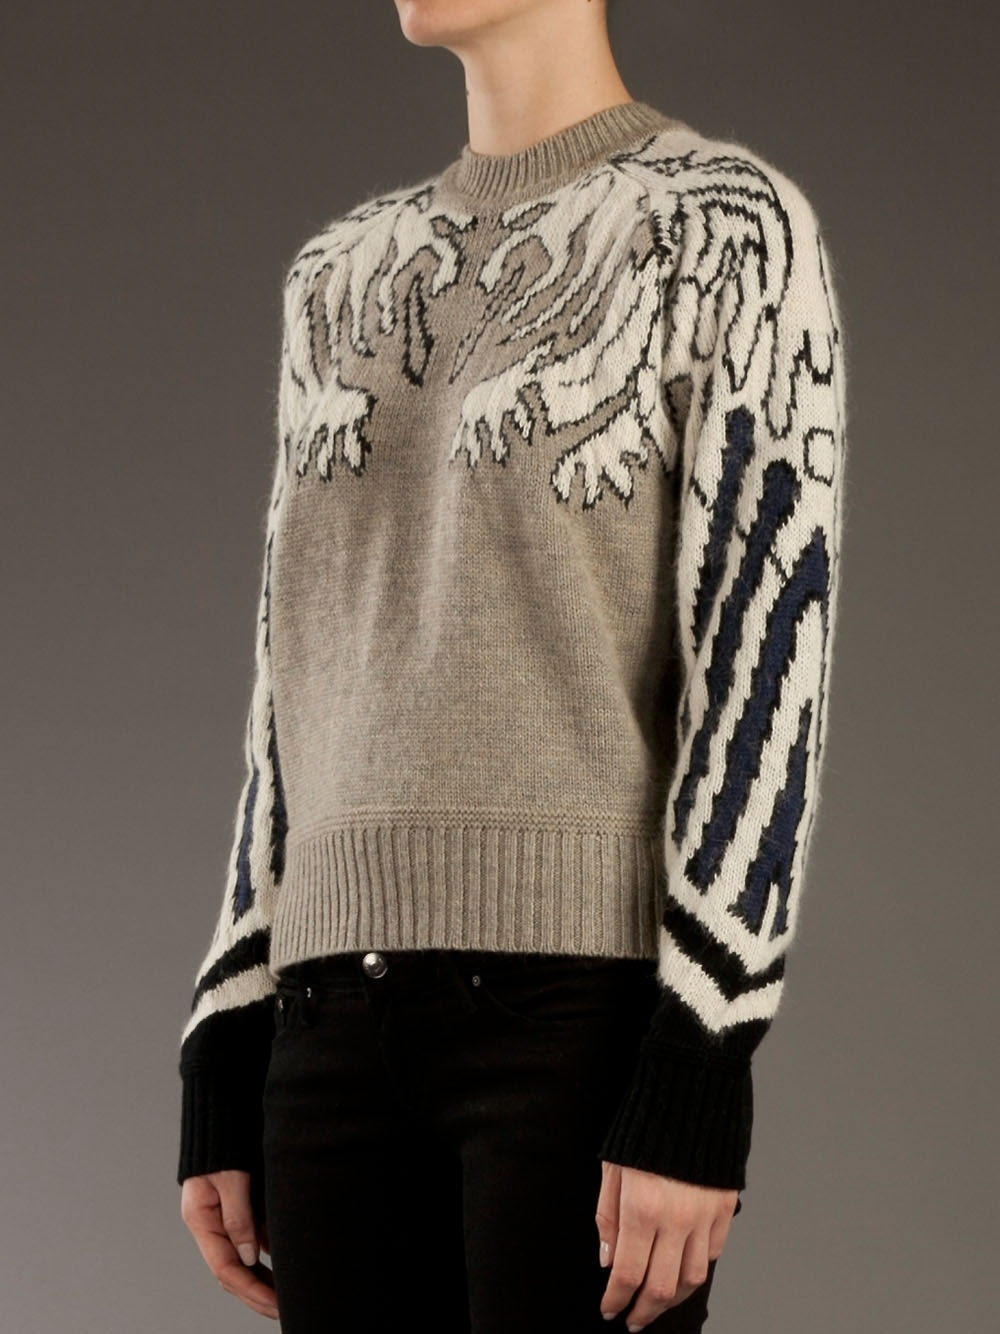 Carven Gargoyle Jacquard Sweater in Taupe (Brown)